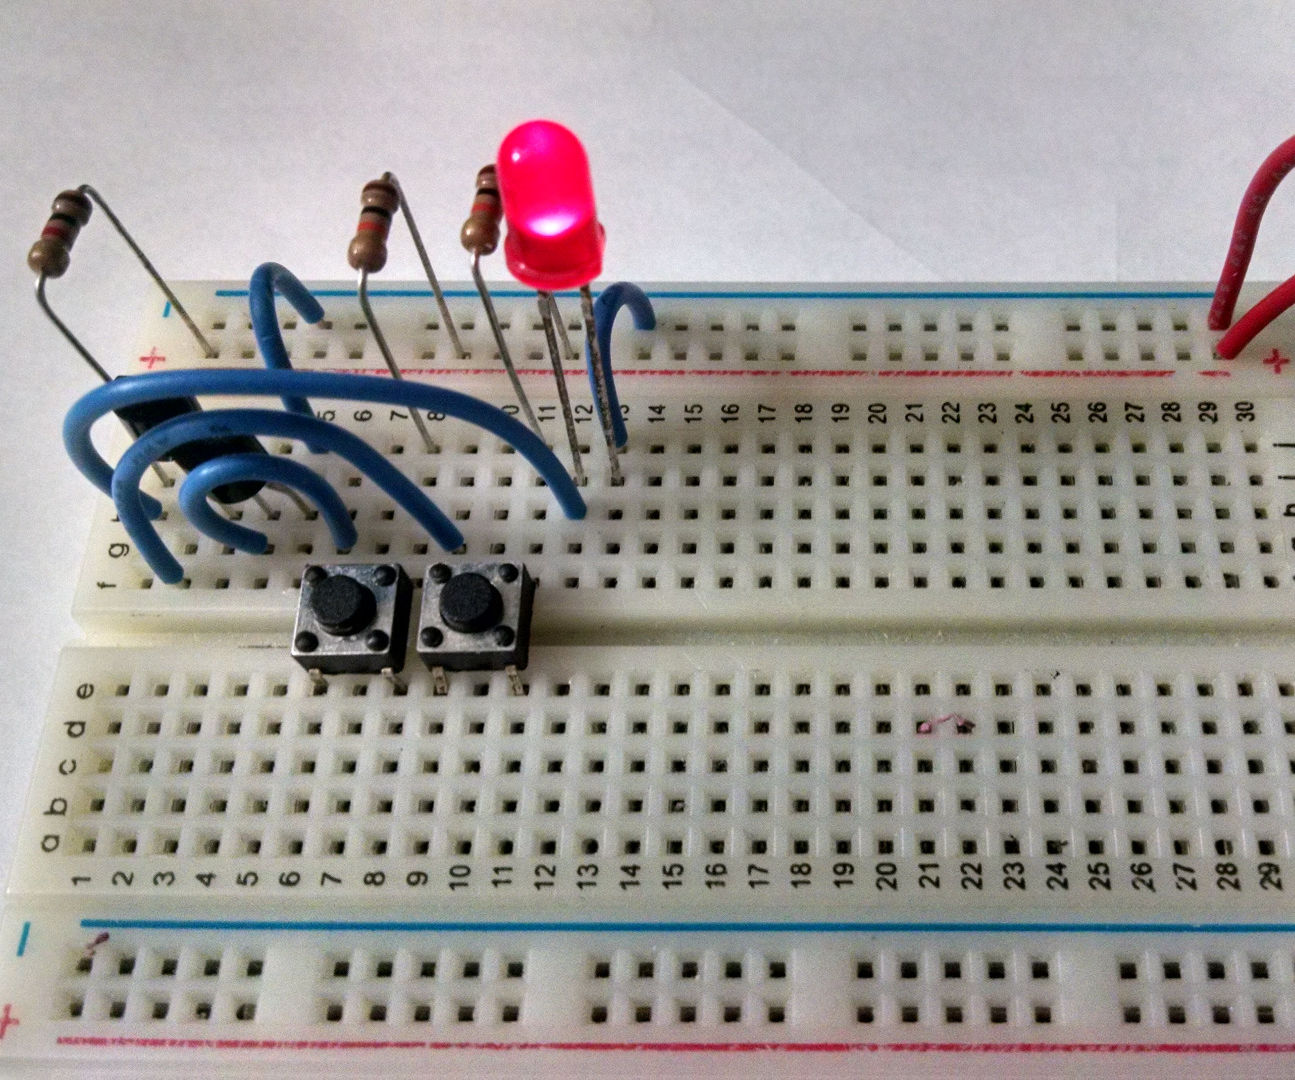 Build a NAND gate from transistors